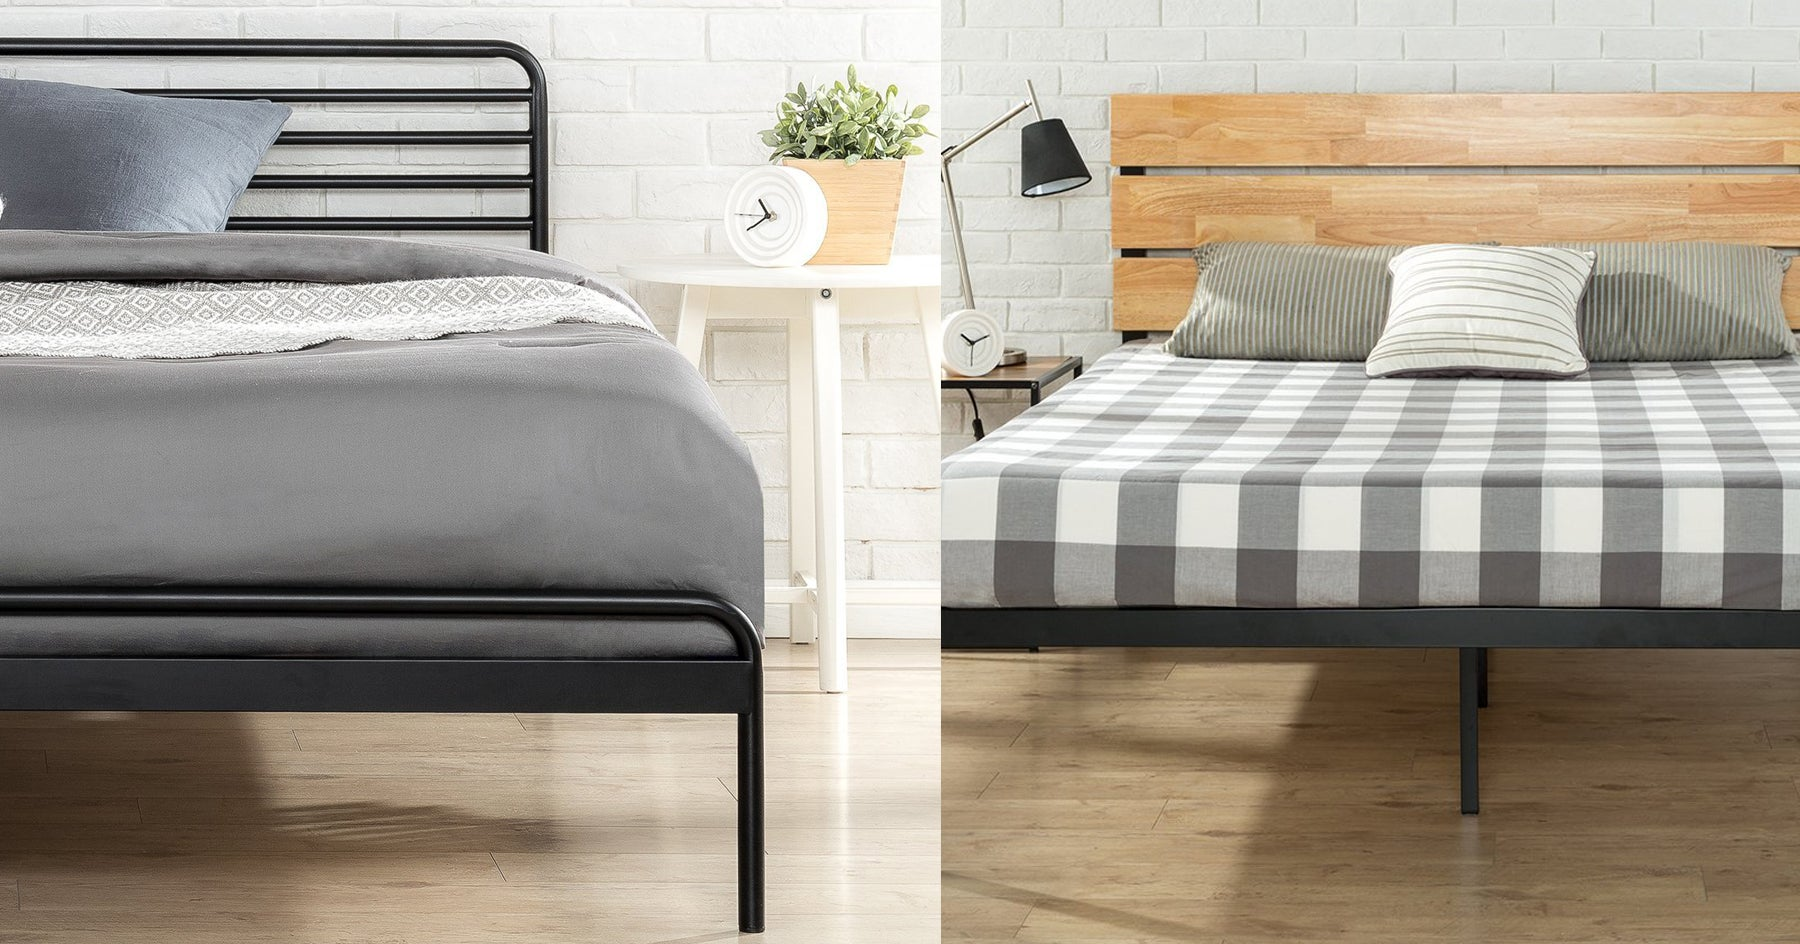 26 of the best bed frames you can get on amazon